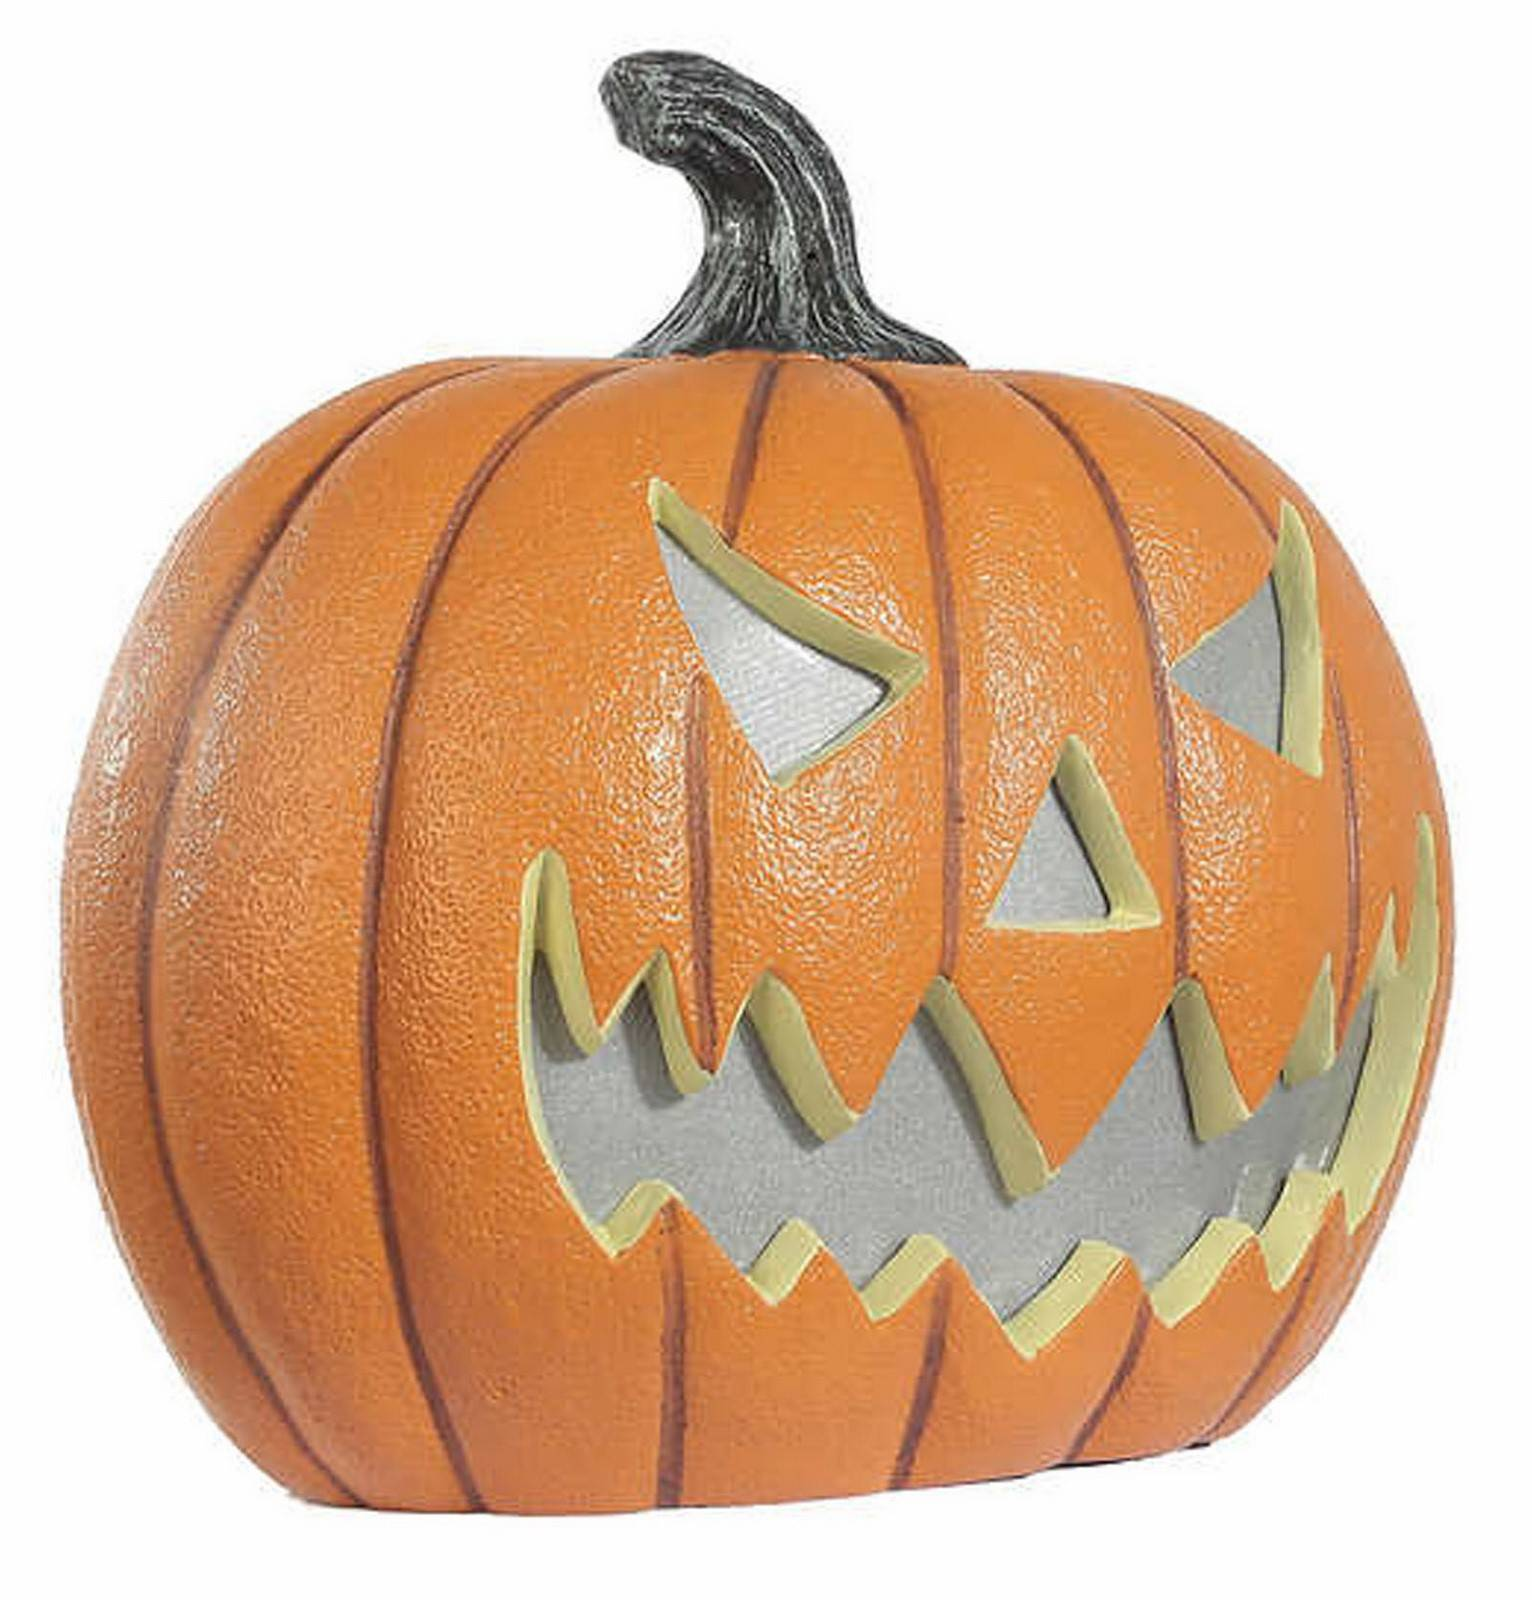 "17"" LED Light Up Halloween Decoration Pumpkin with Lights Sounds"